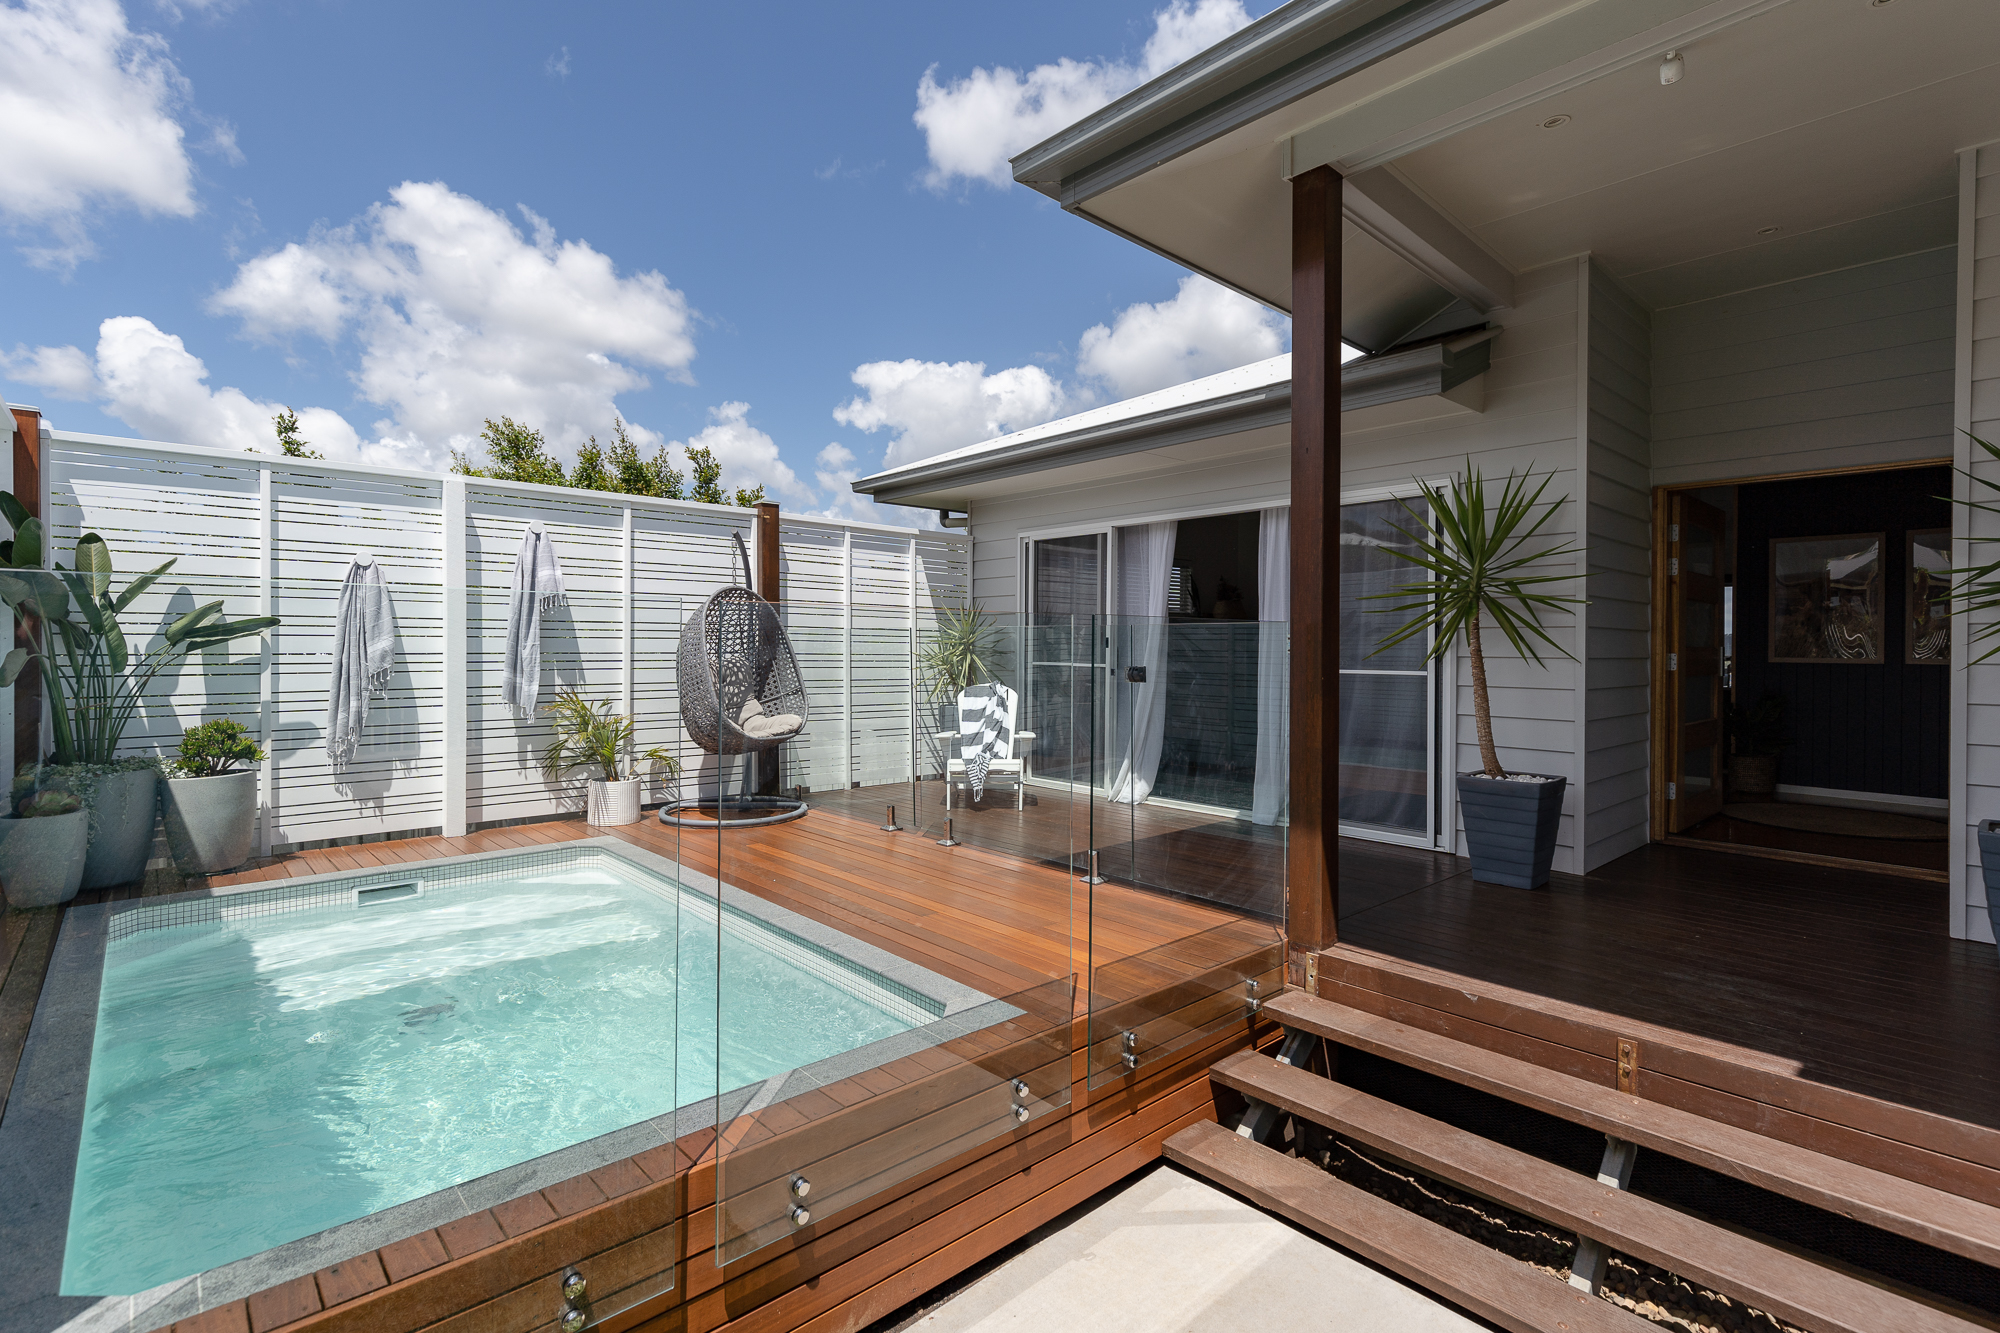 12 Small Backyard Pool Ideas How To Fit A Pool In A Small Yard Apartment Therapy